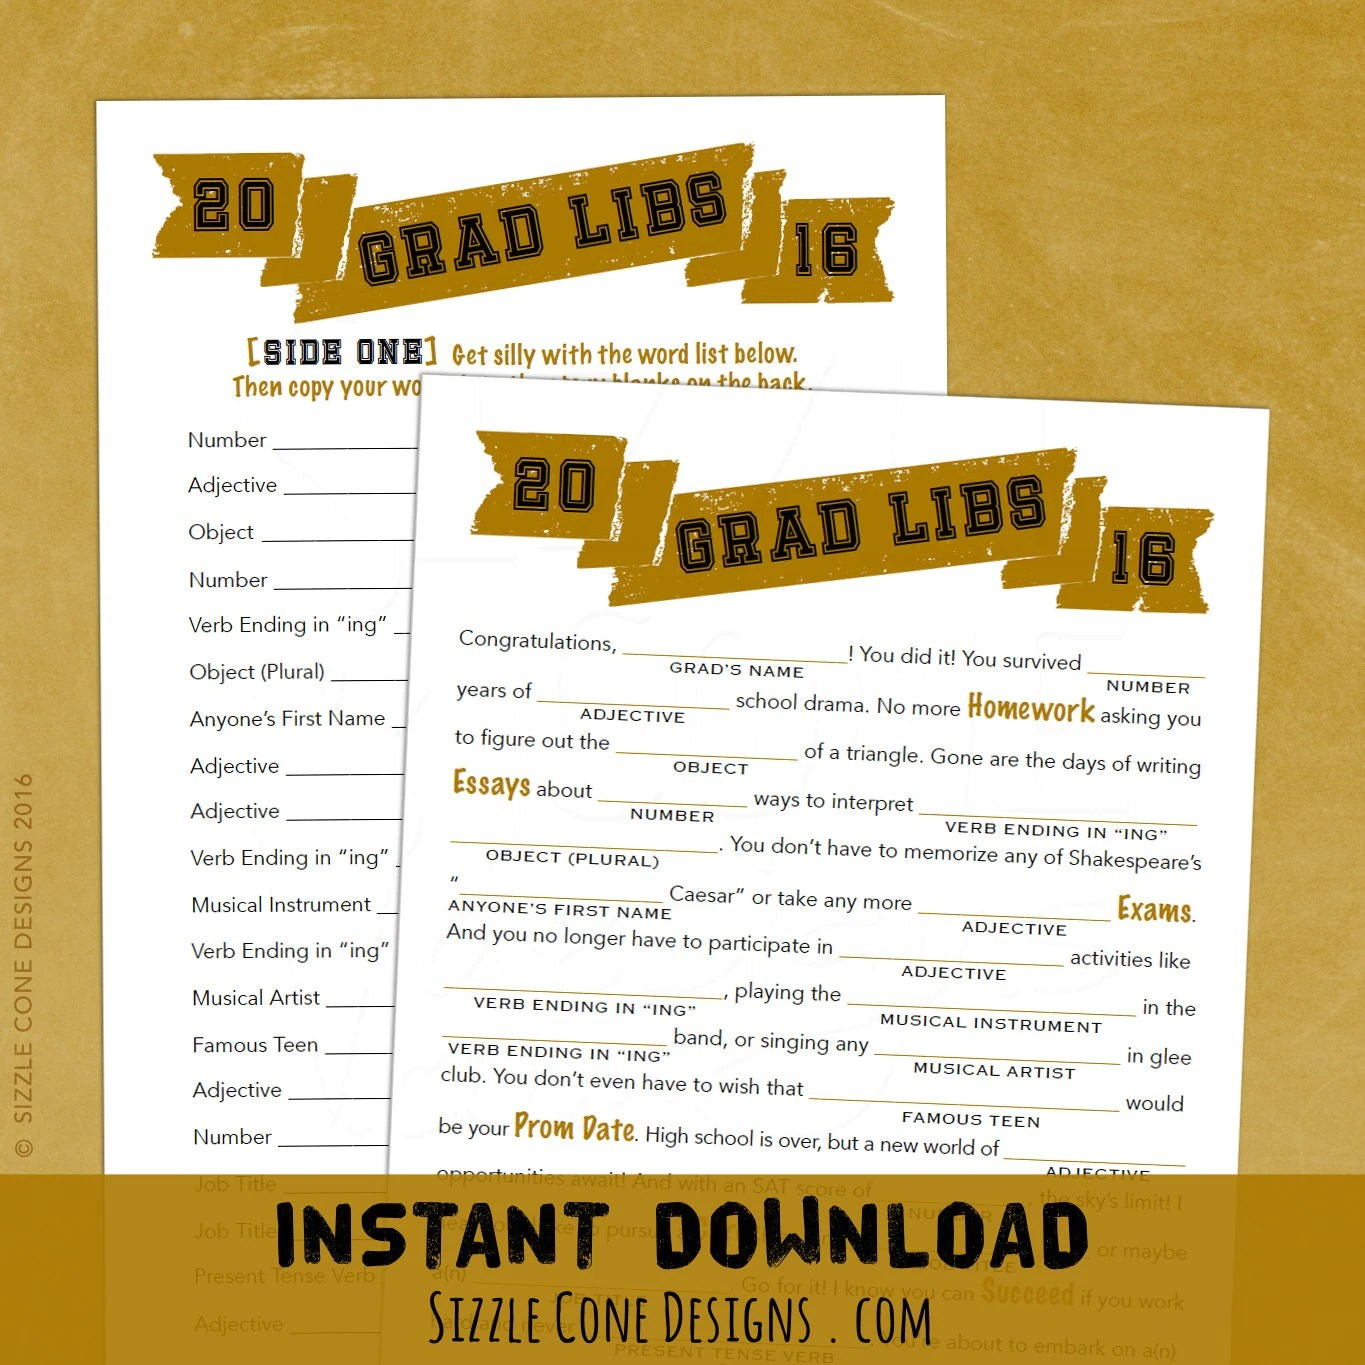 Grad Libs High School Graduation Party Madlib Game